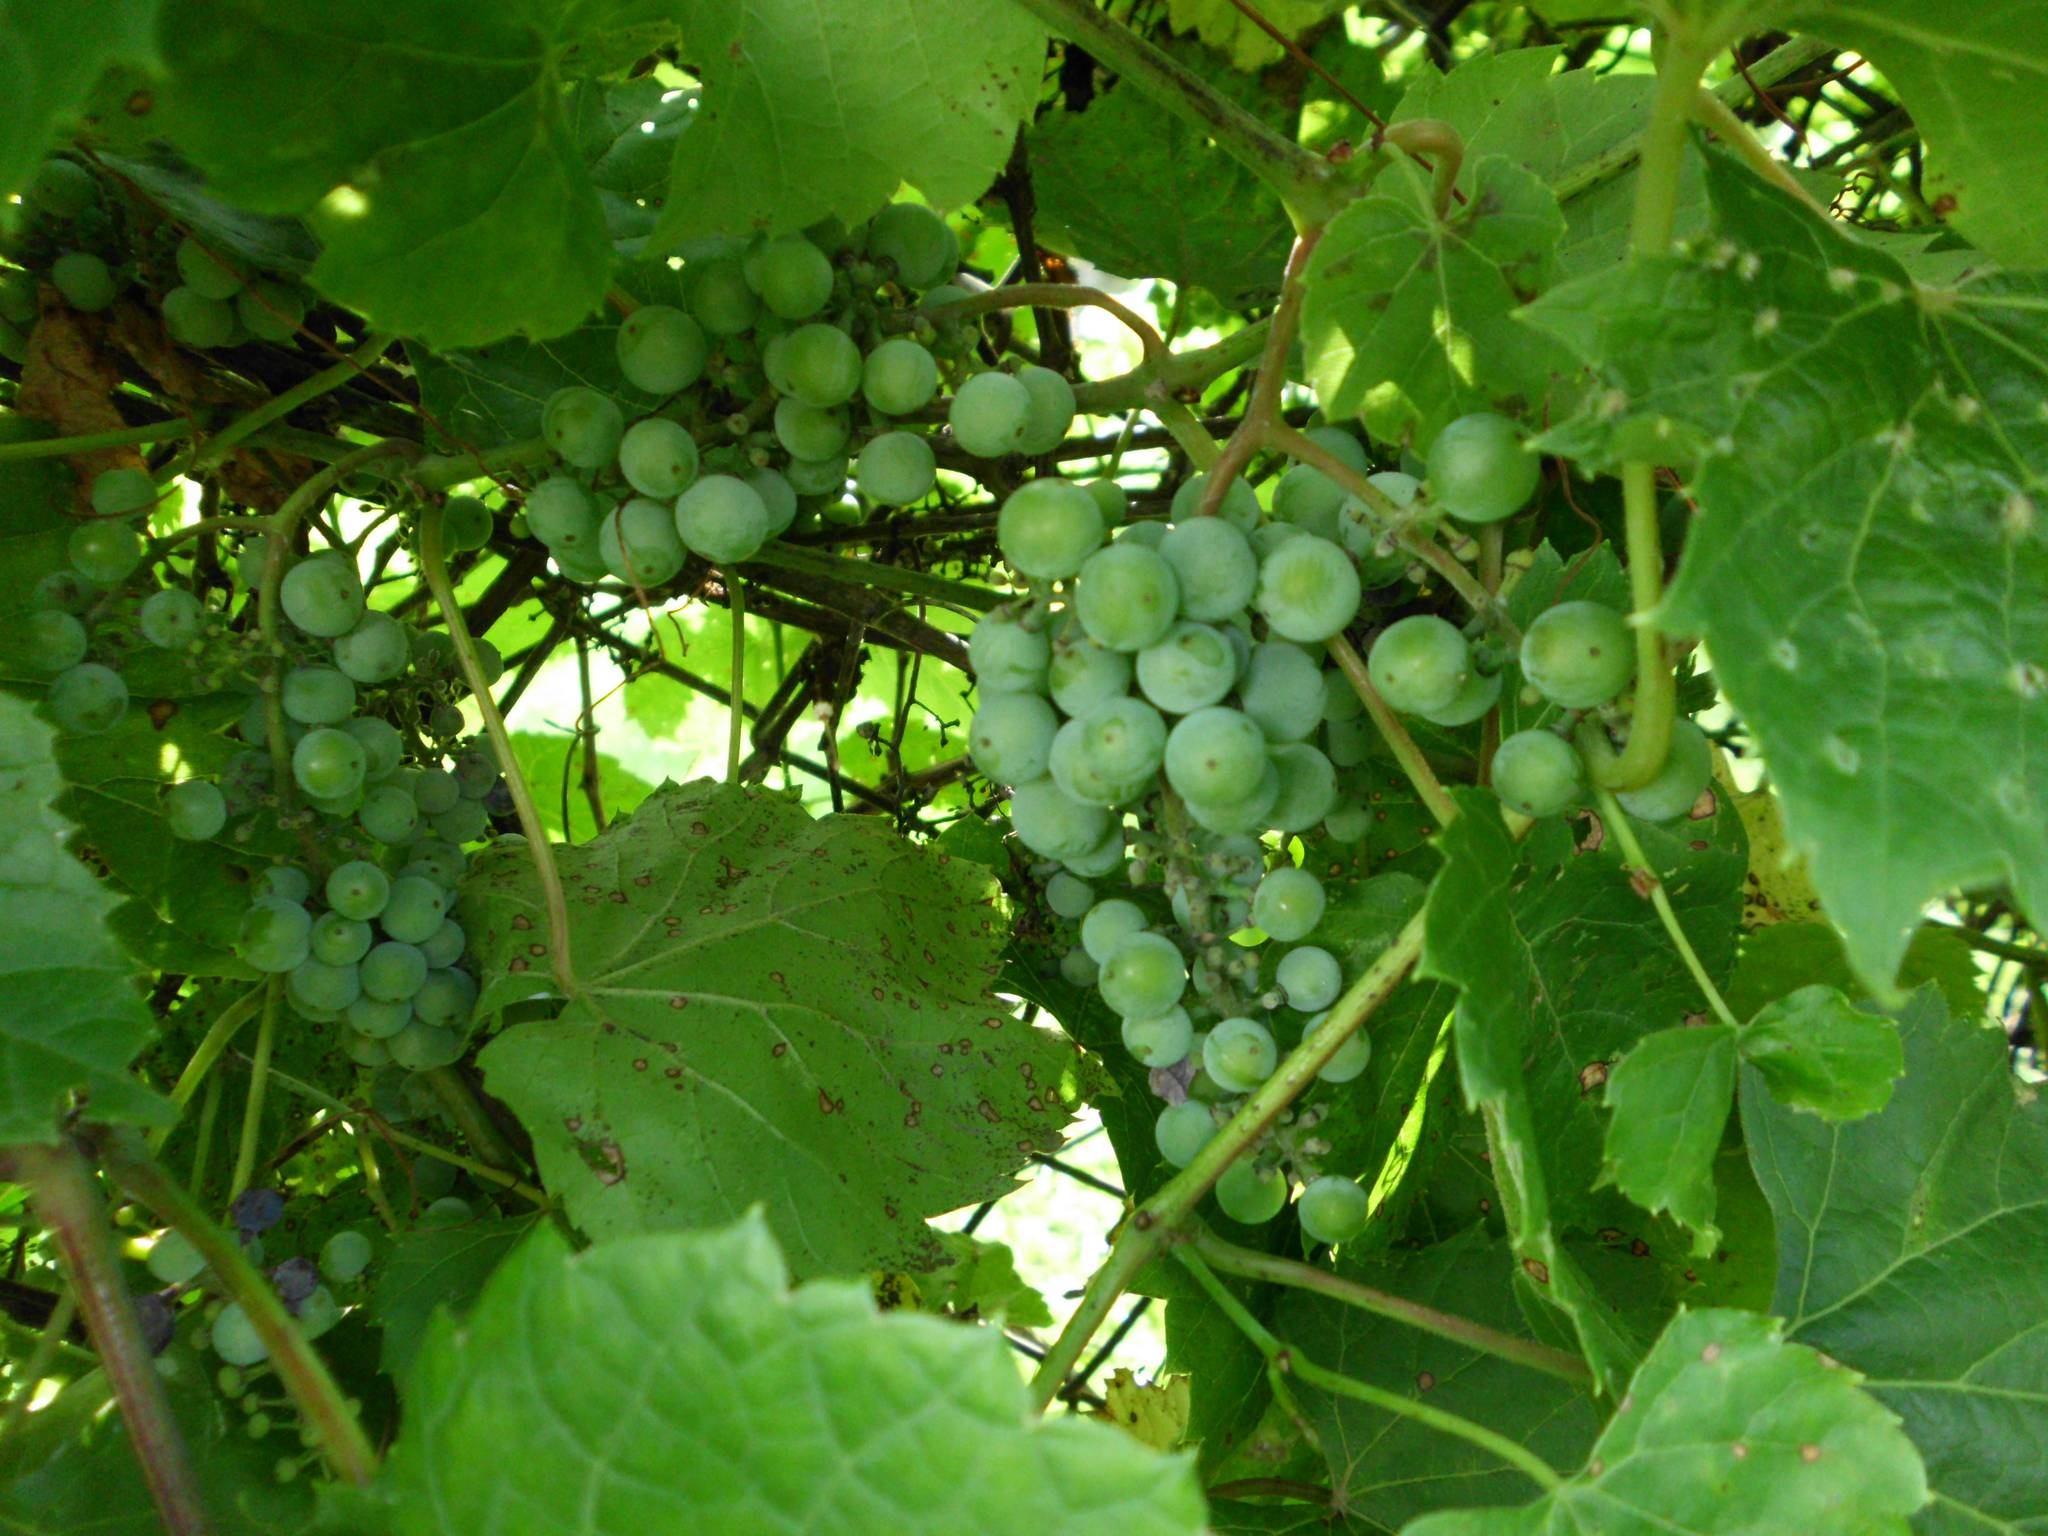 so i have grapes growing in my backyard the ethnobotanical